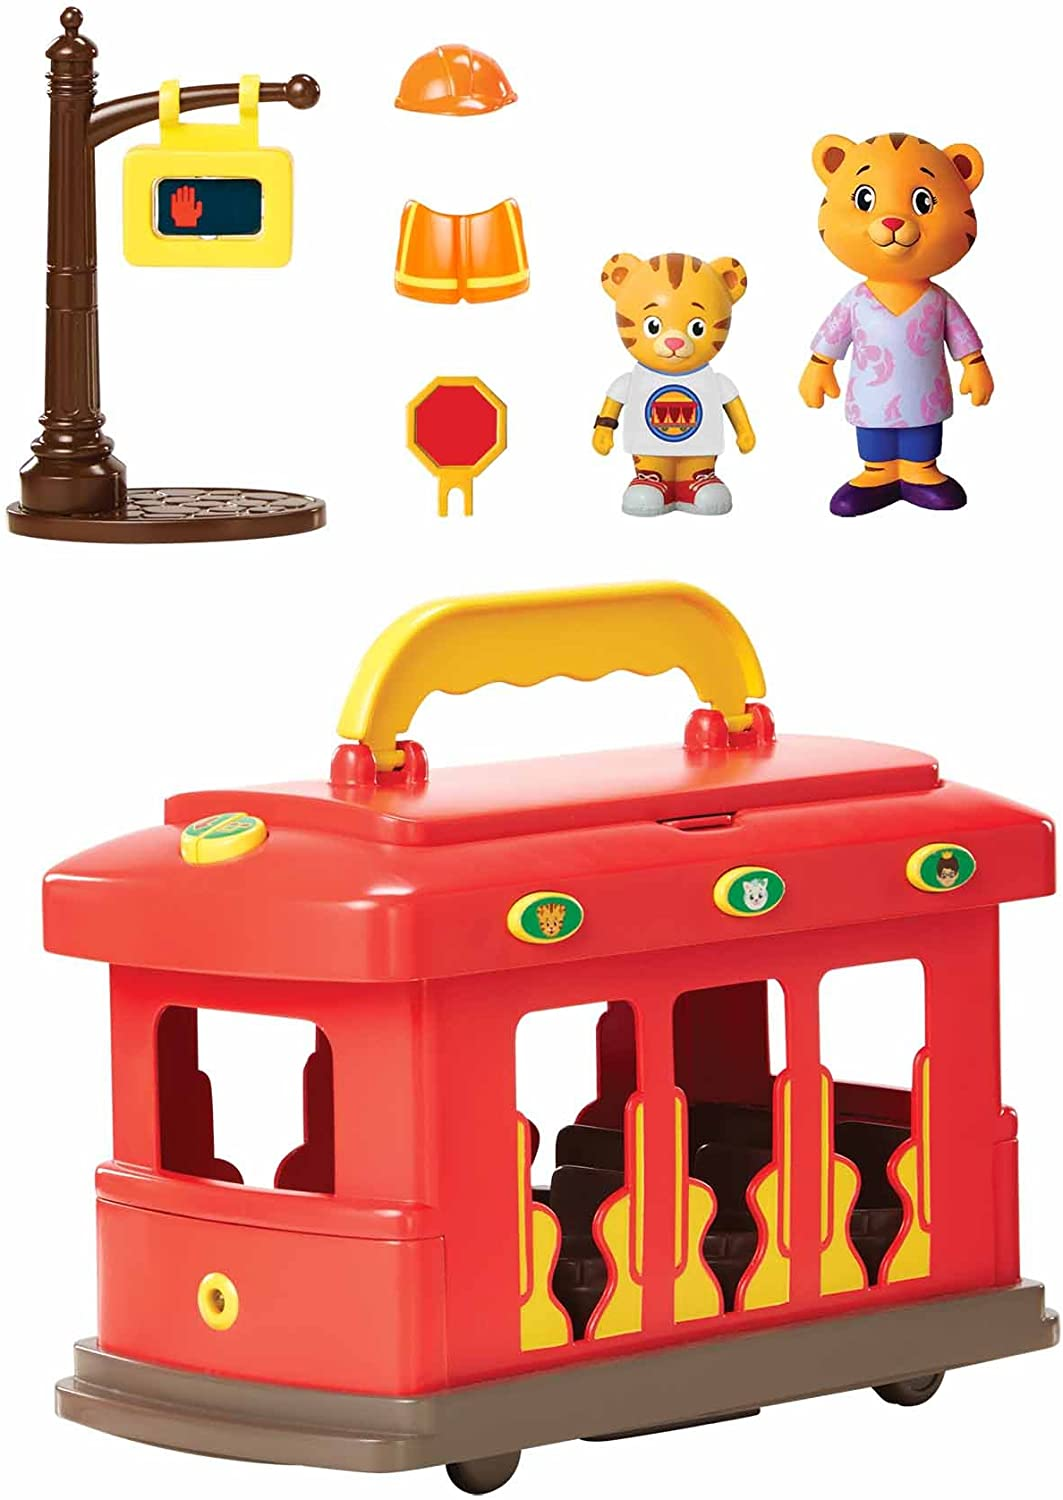 Daniel Tiger's Neighborhood Deluxe Electronic Trolley Vehicle